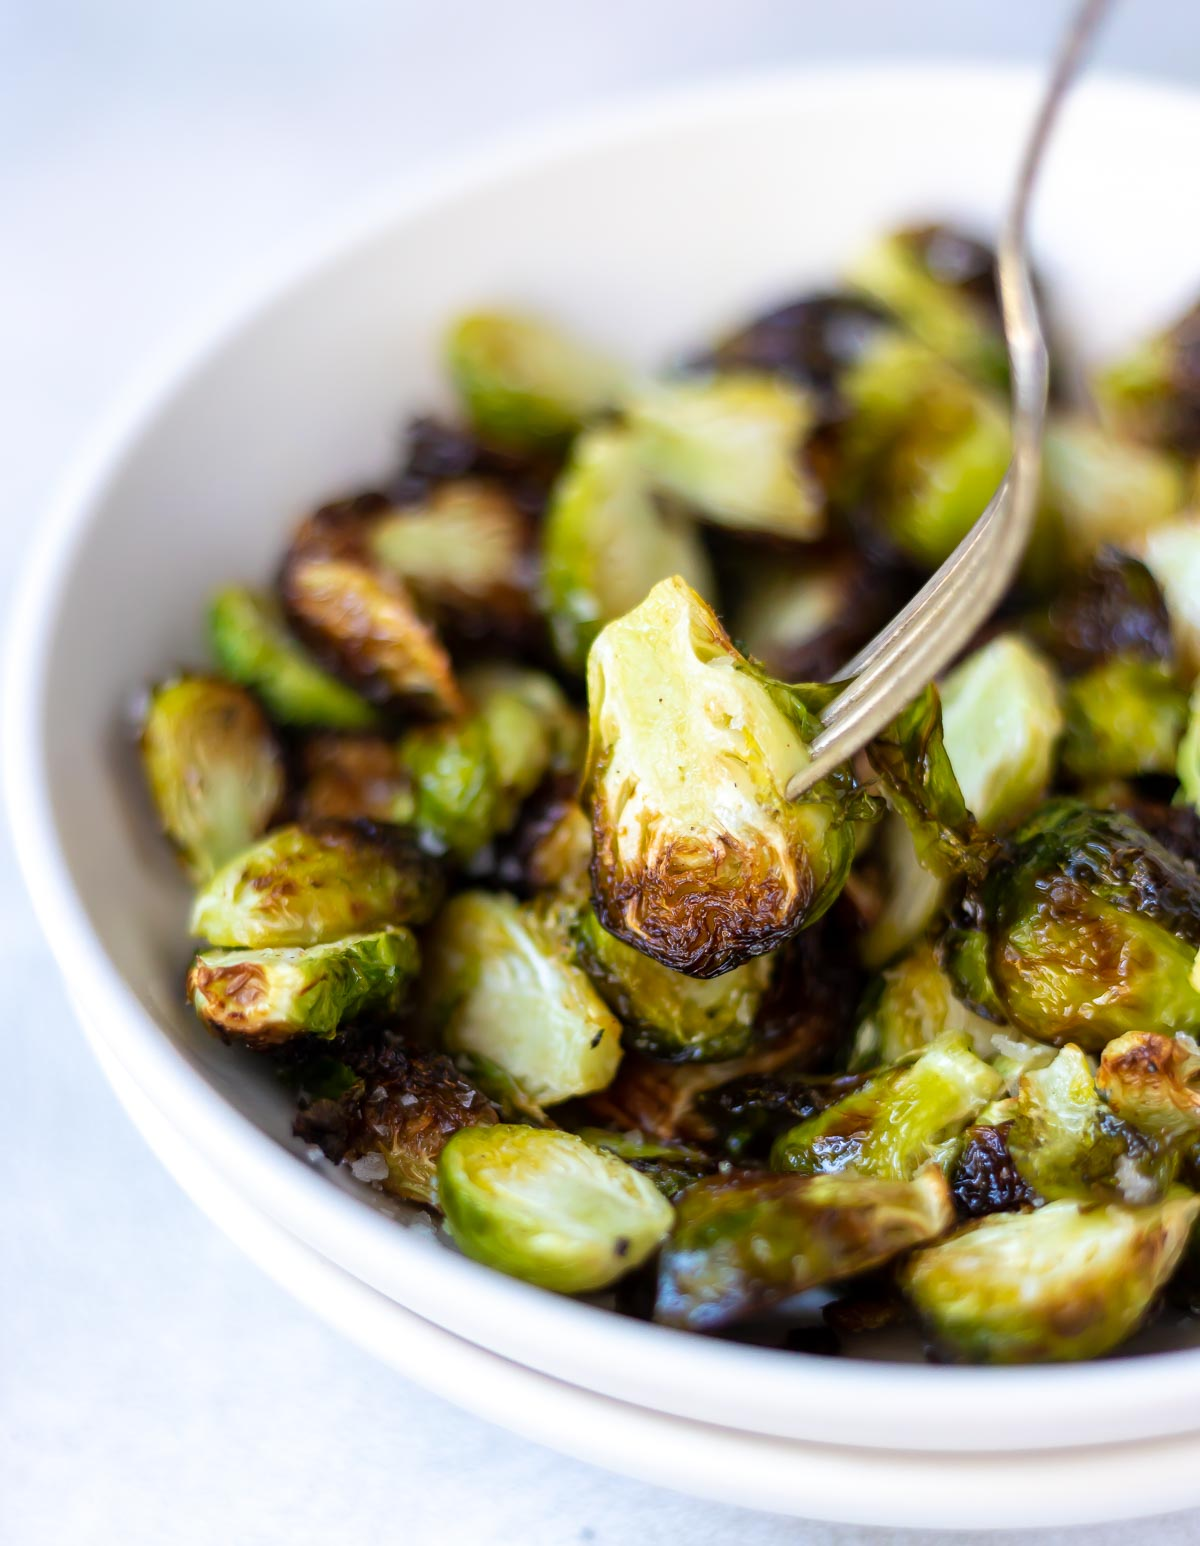 air fryer brussels sprouts in white bowl with silver fork